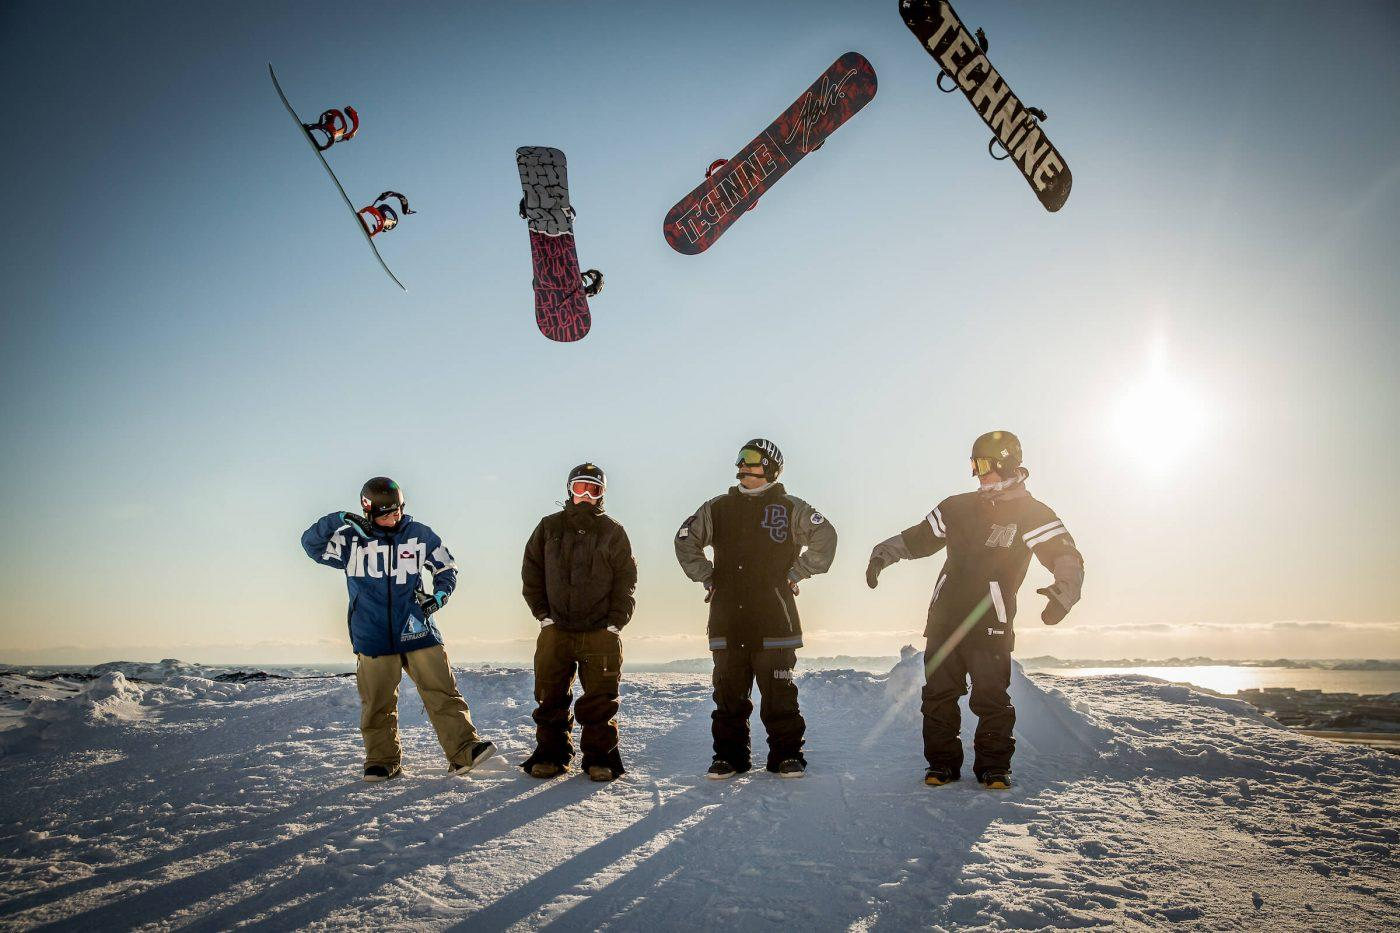 Four snowboarders from Nuuk in Greenland thowing their snowboards in the air. Photo by Mads Pihl